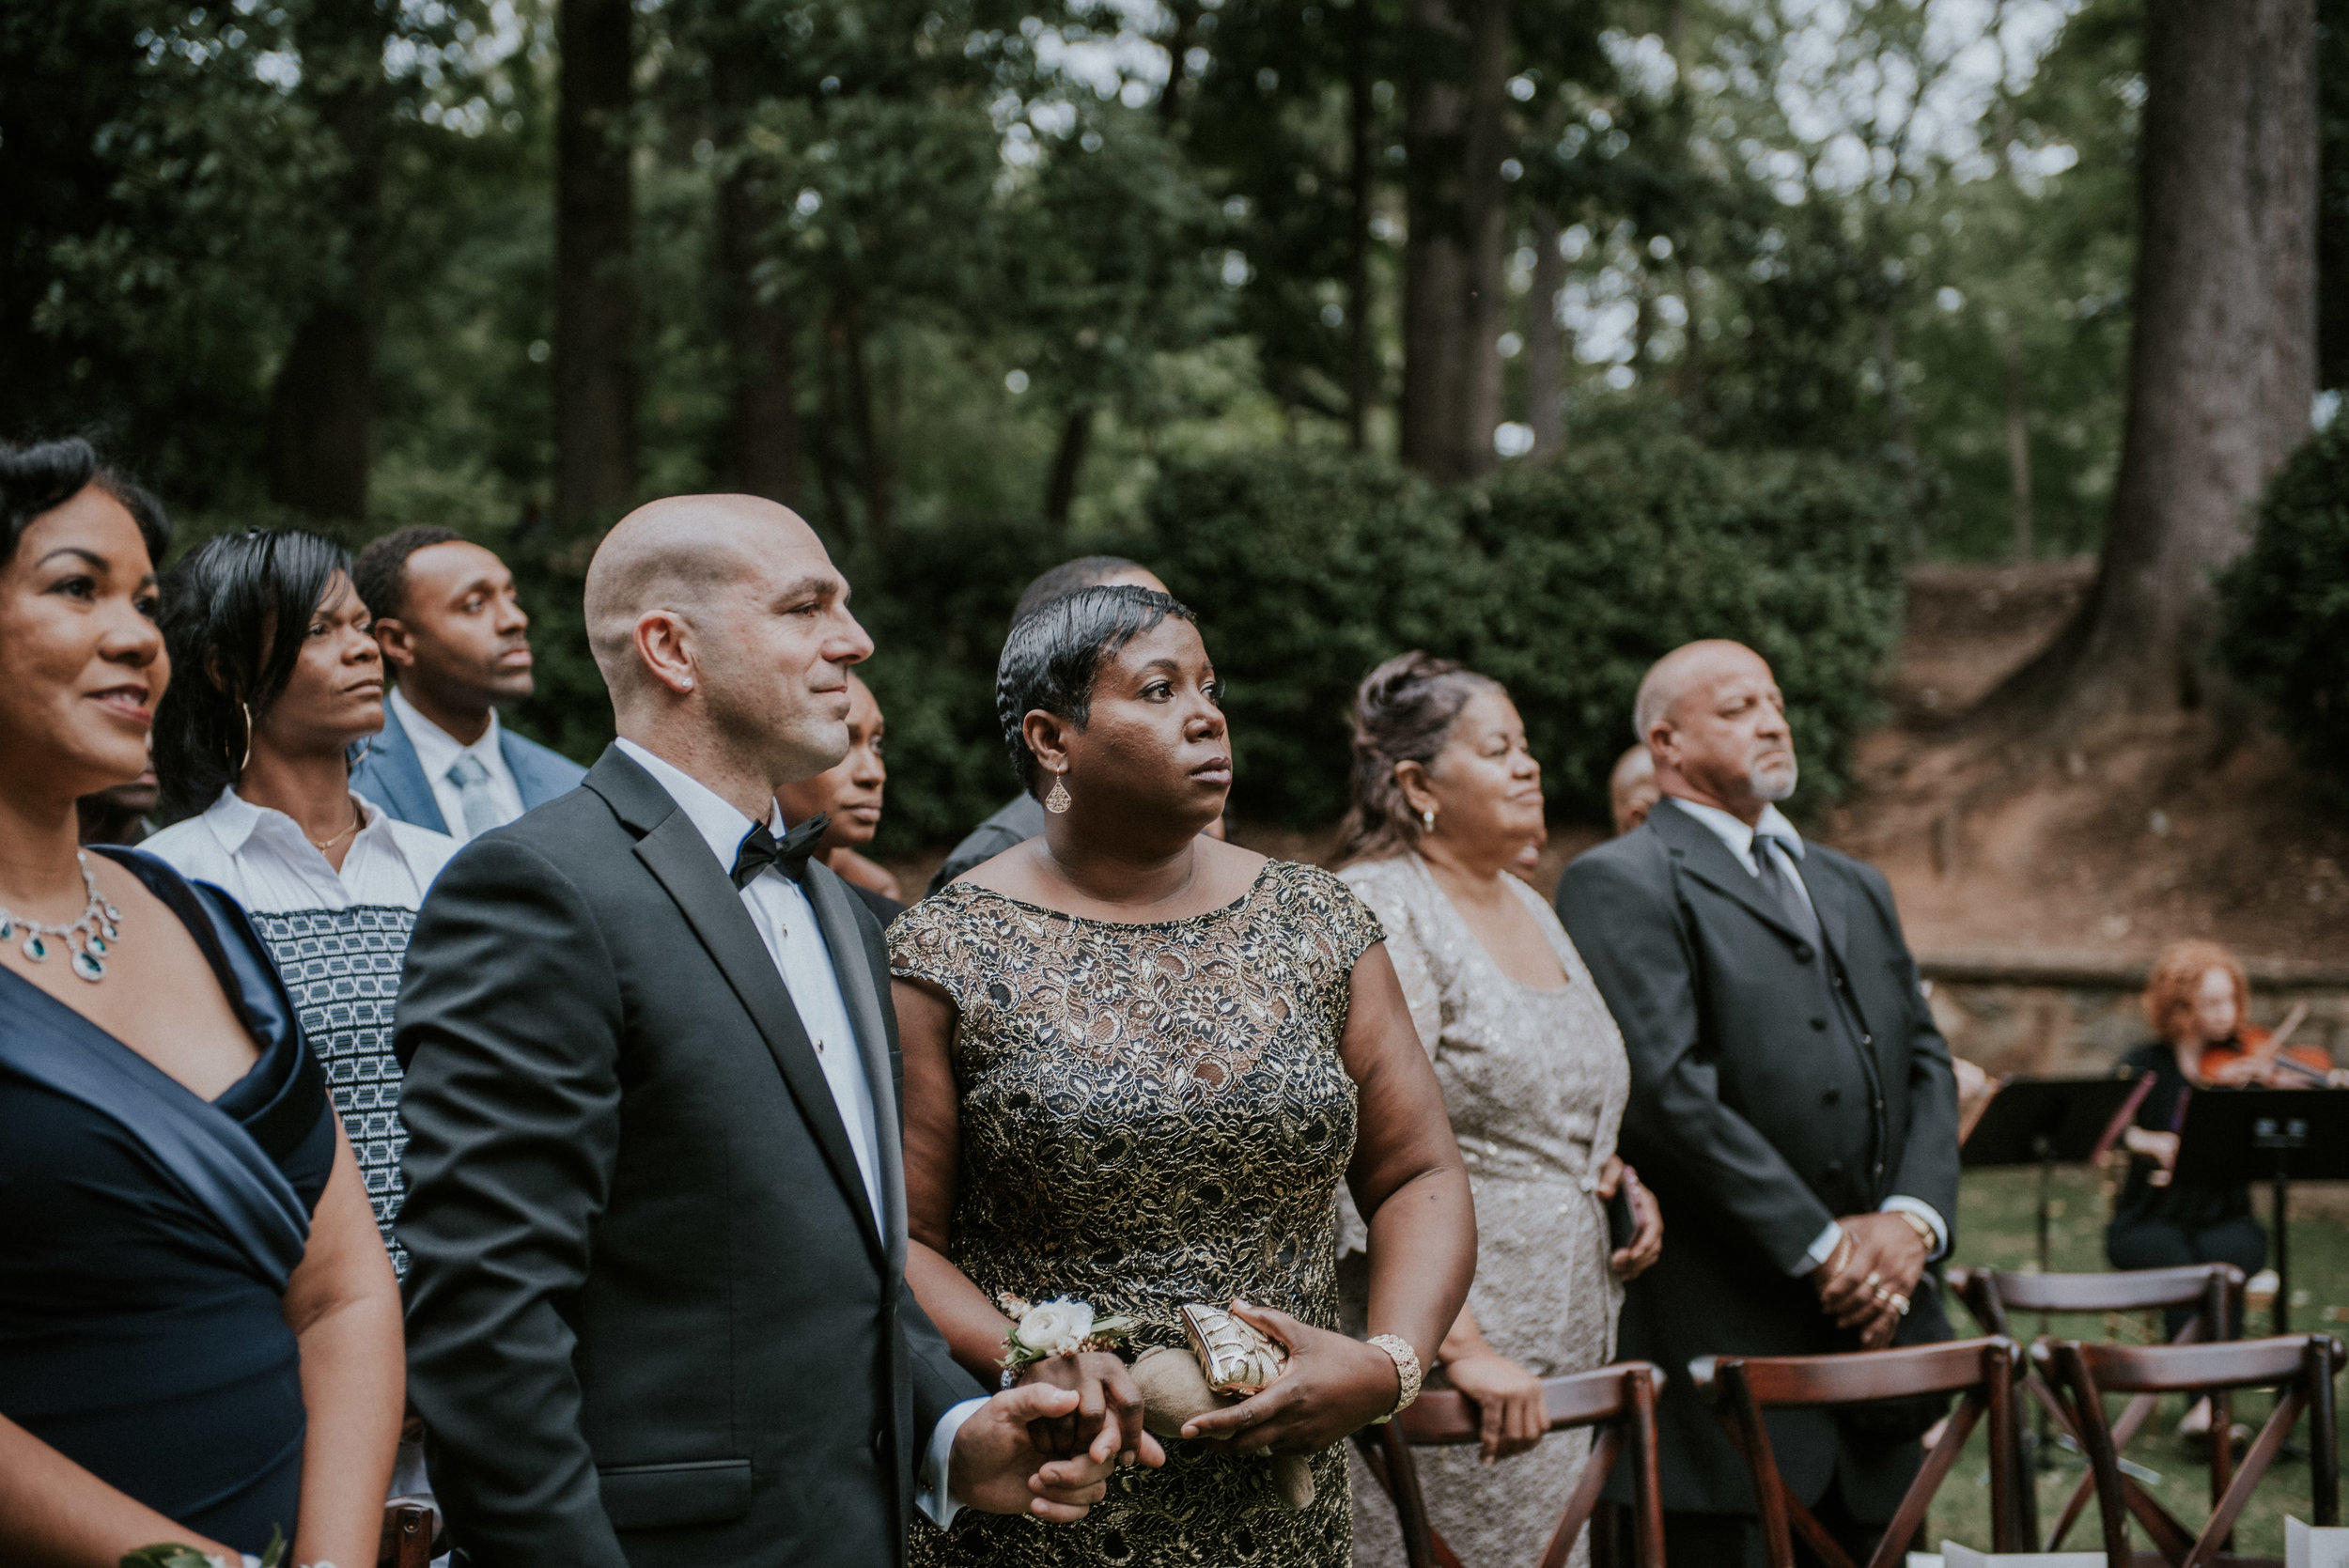 Guests' first reaction to bride's ceremony entrance